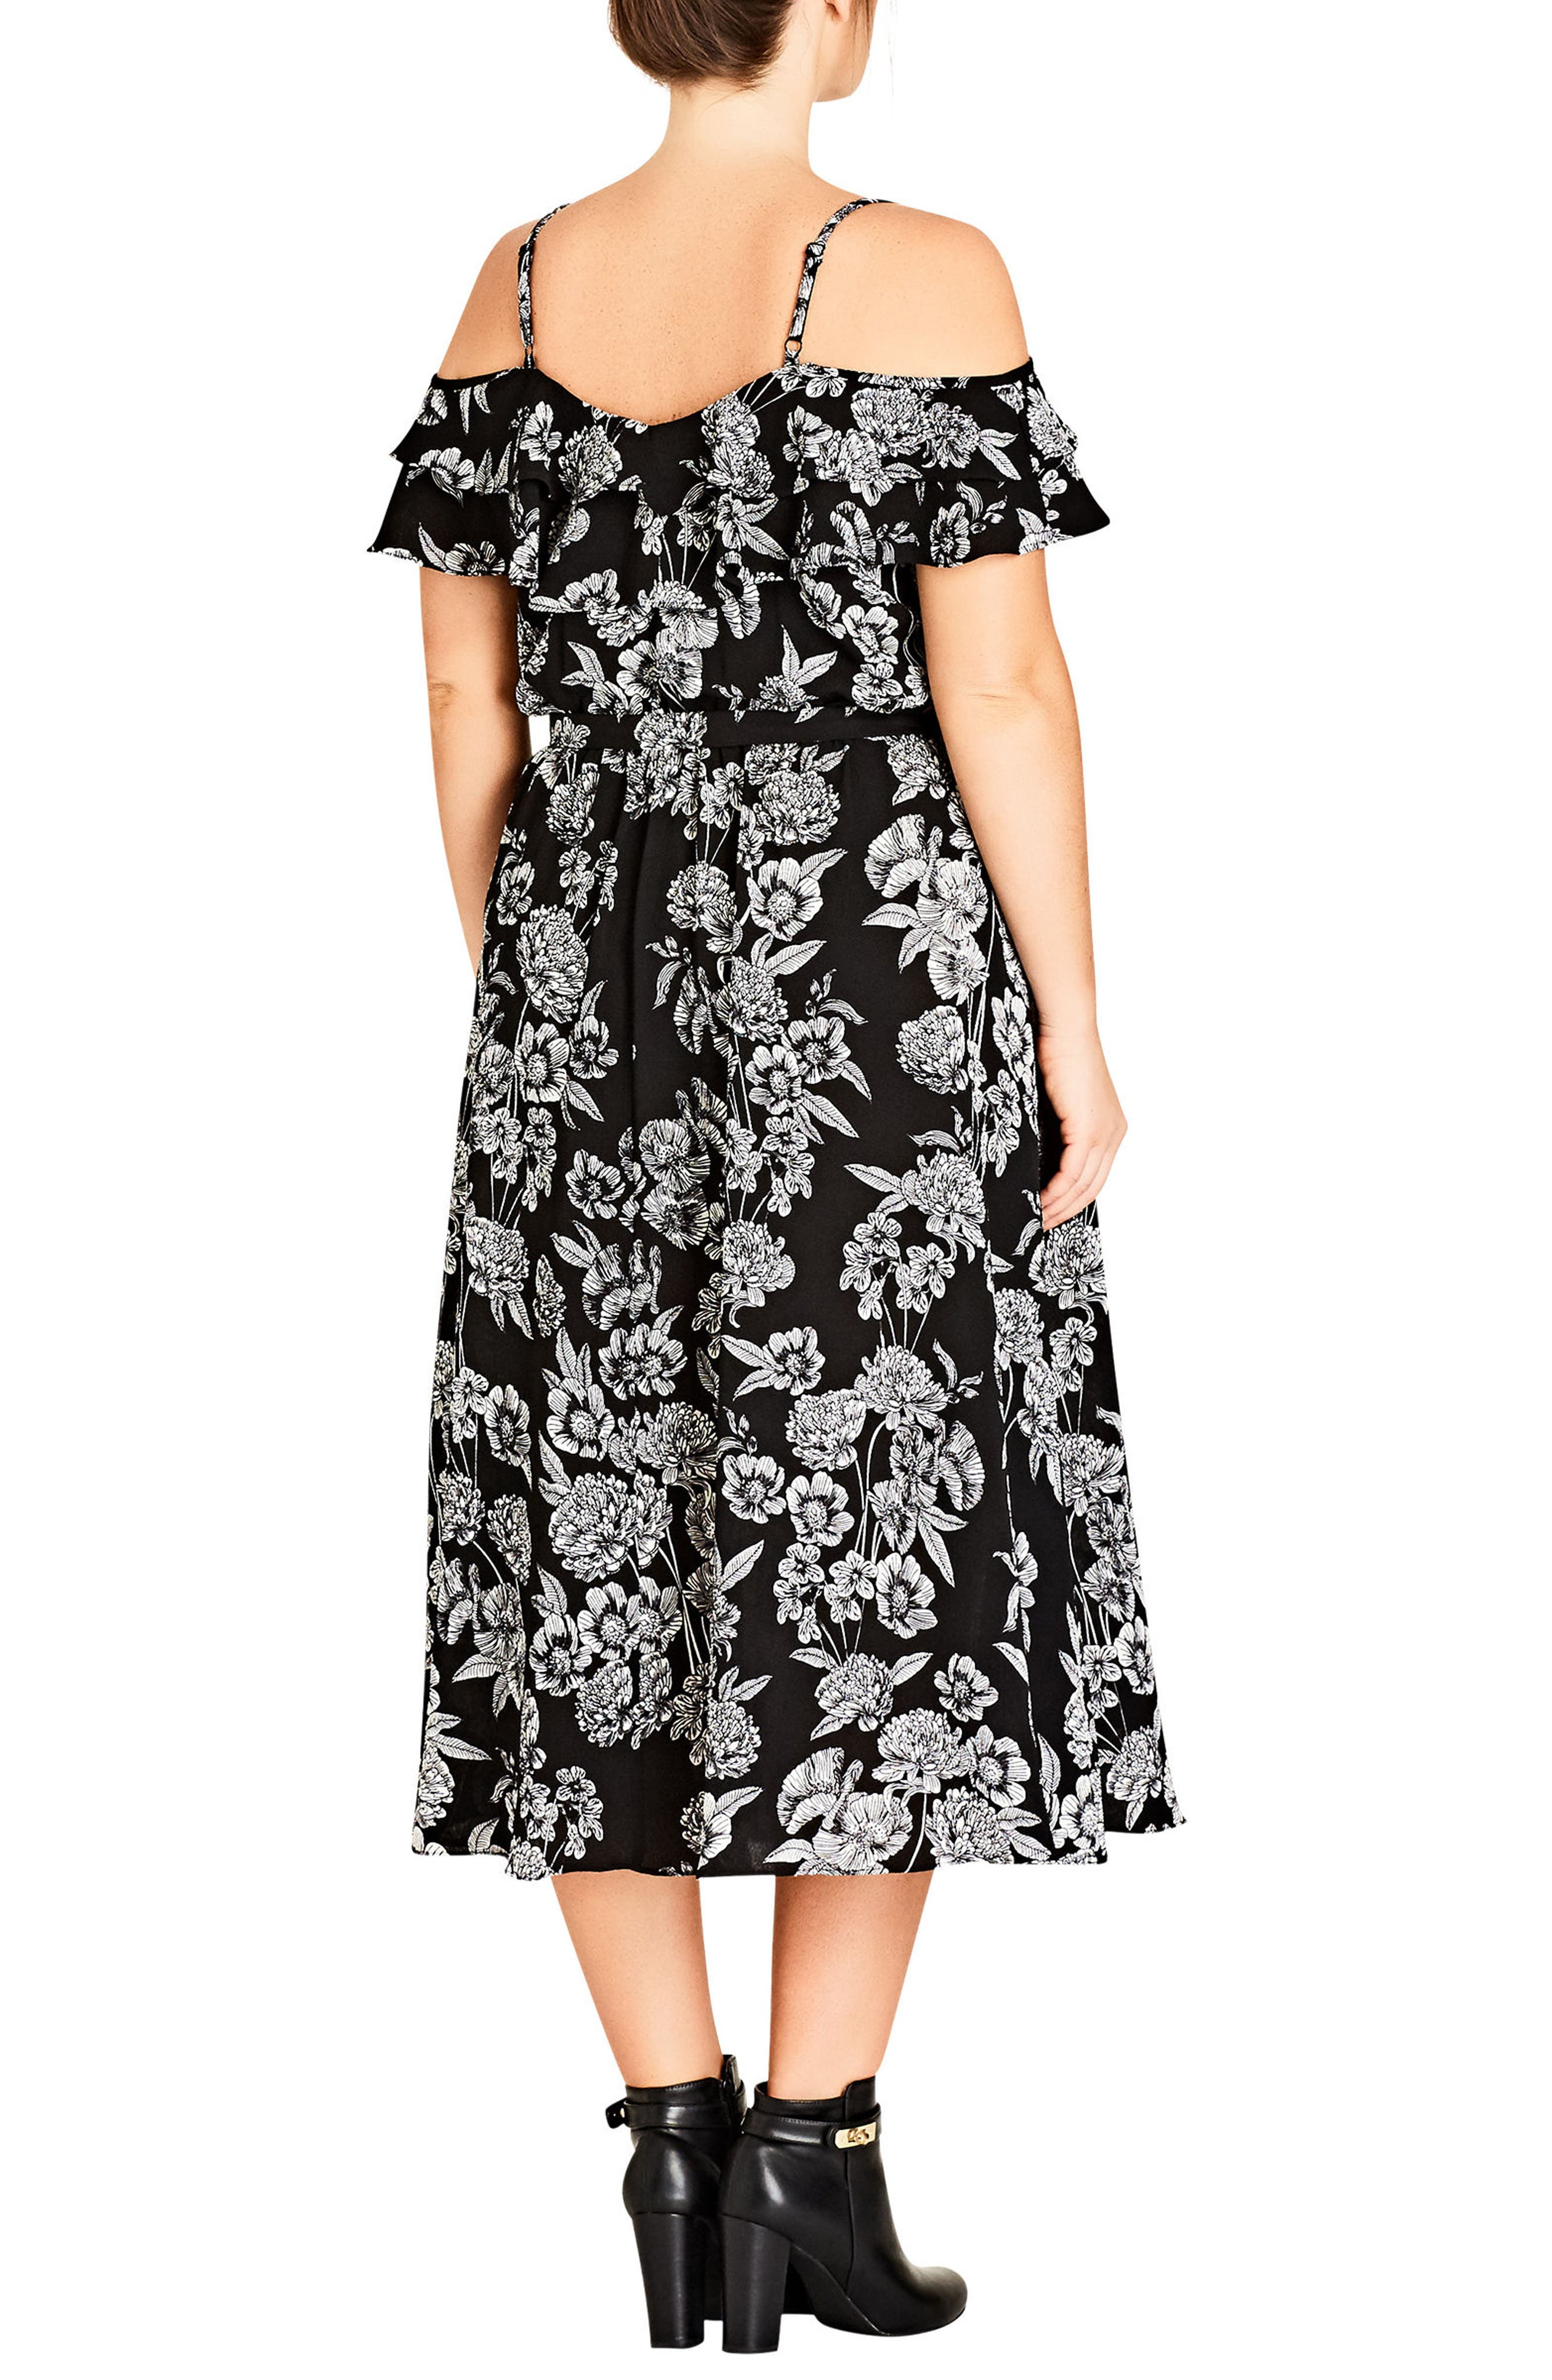 Bloomsbury Midi Dress,                             Alternate thumbnail 2, color,                             001